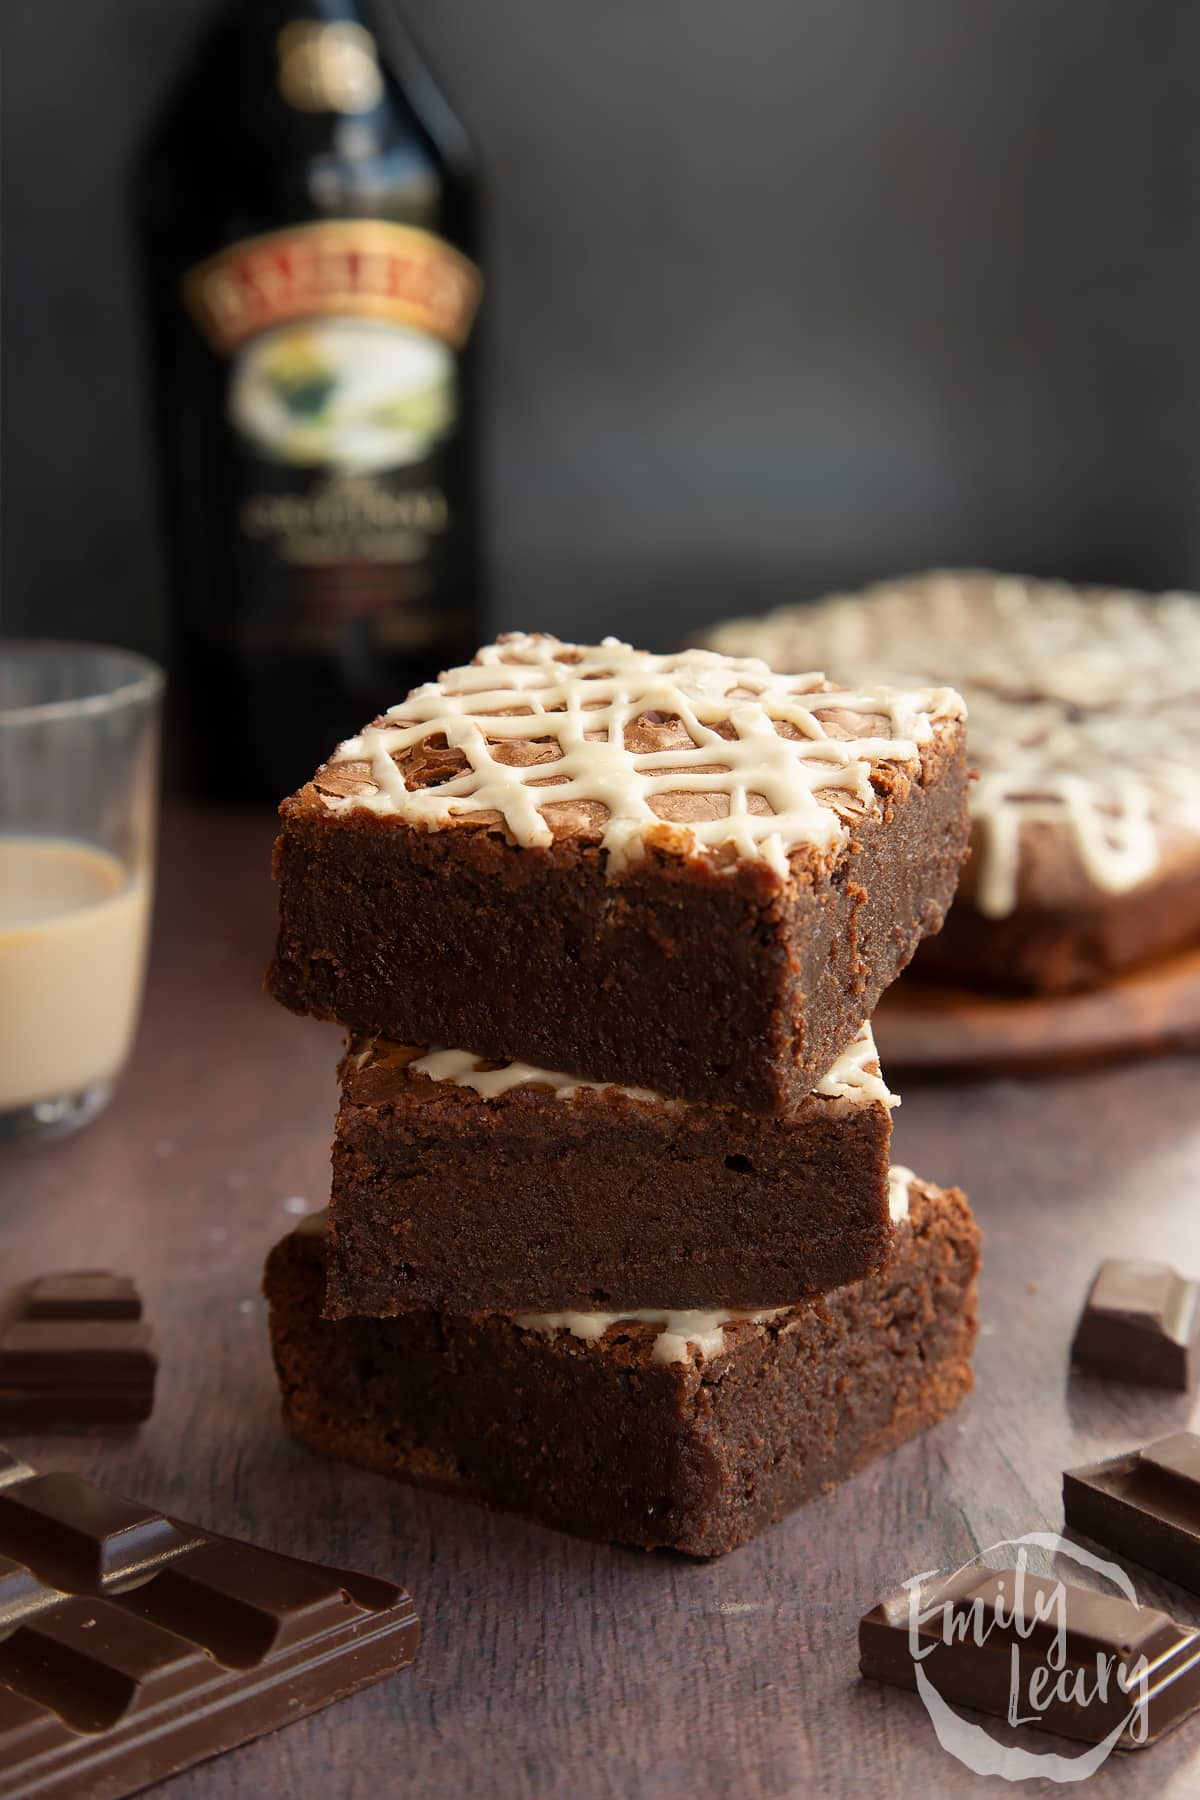 Stack of iced Baileys brownies, with more brownies and a bottle of Baileys in the background.